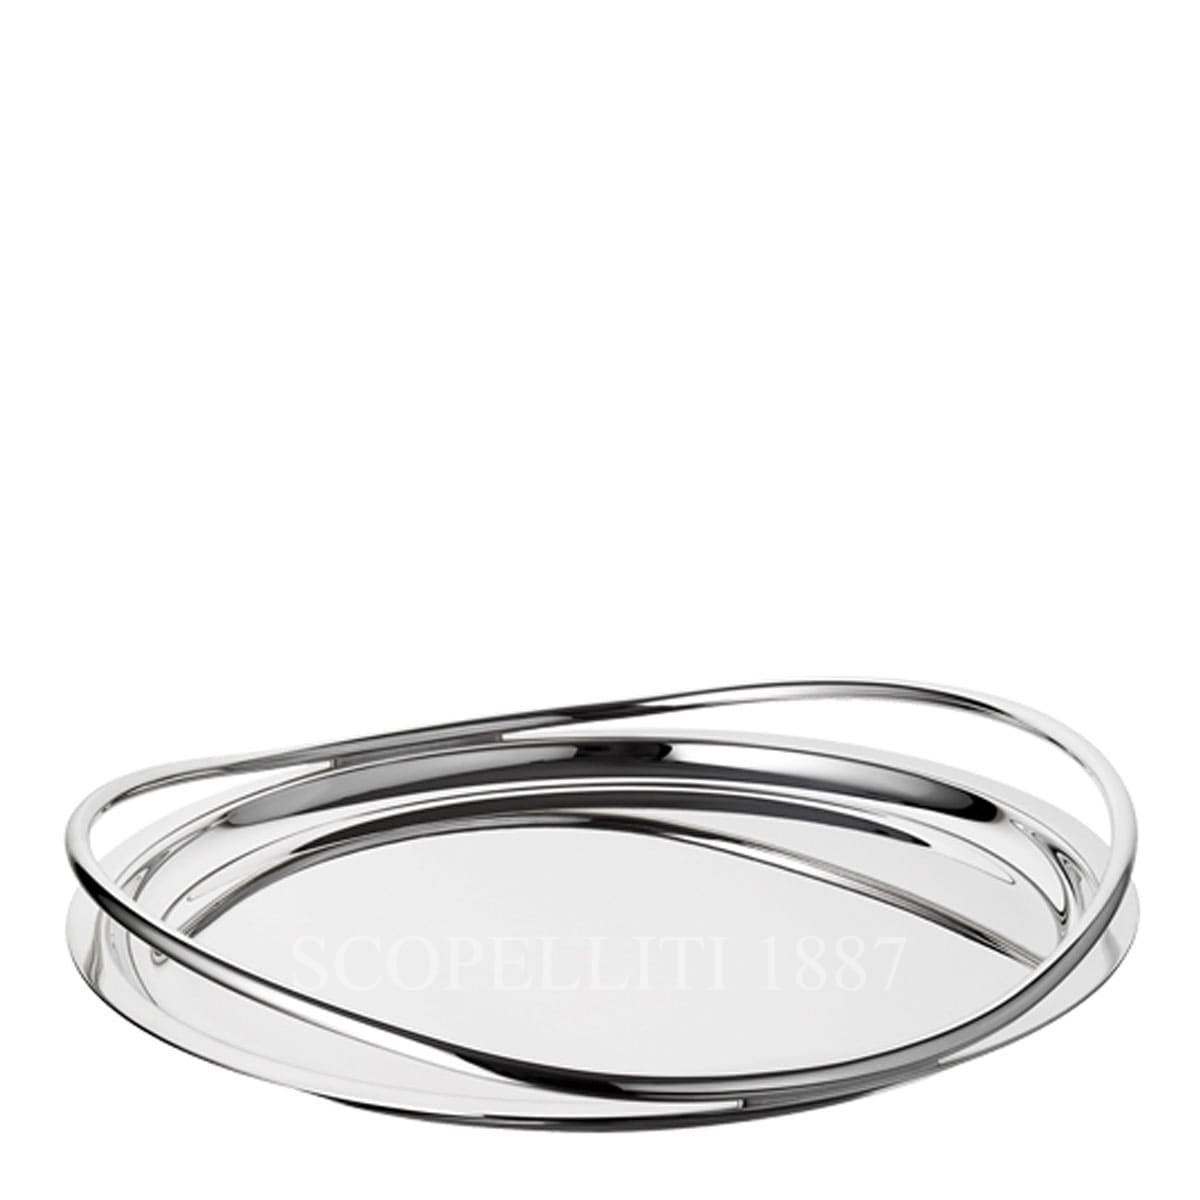 Christofle Vertigo Silver Plated Round Serving Tray – Large